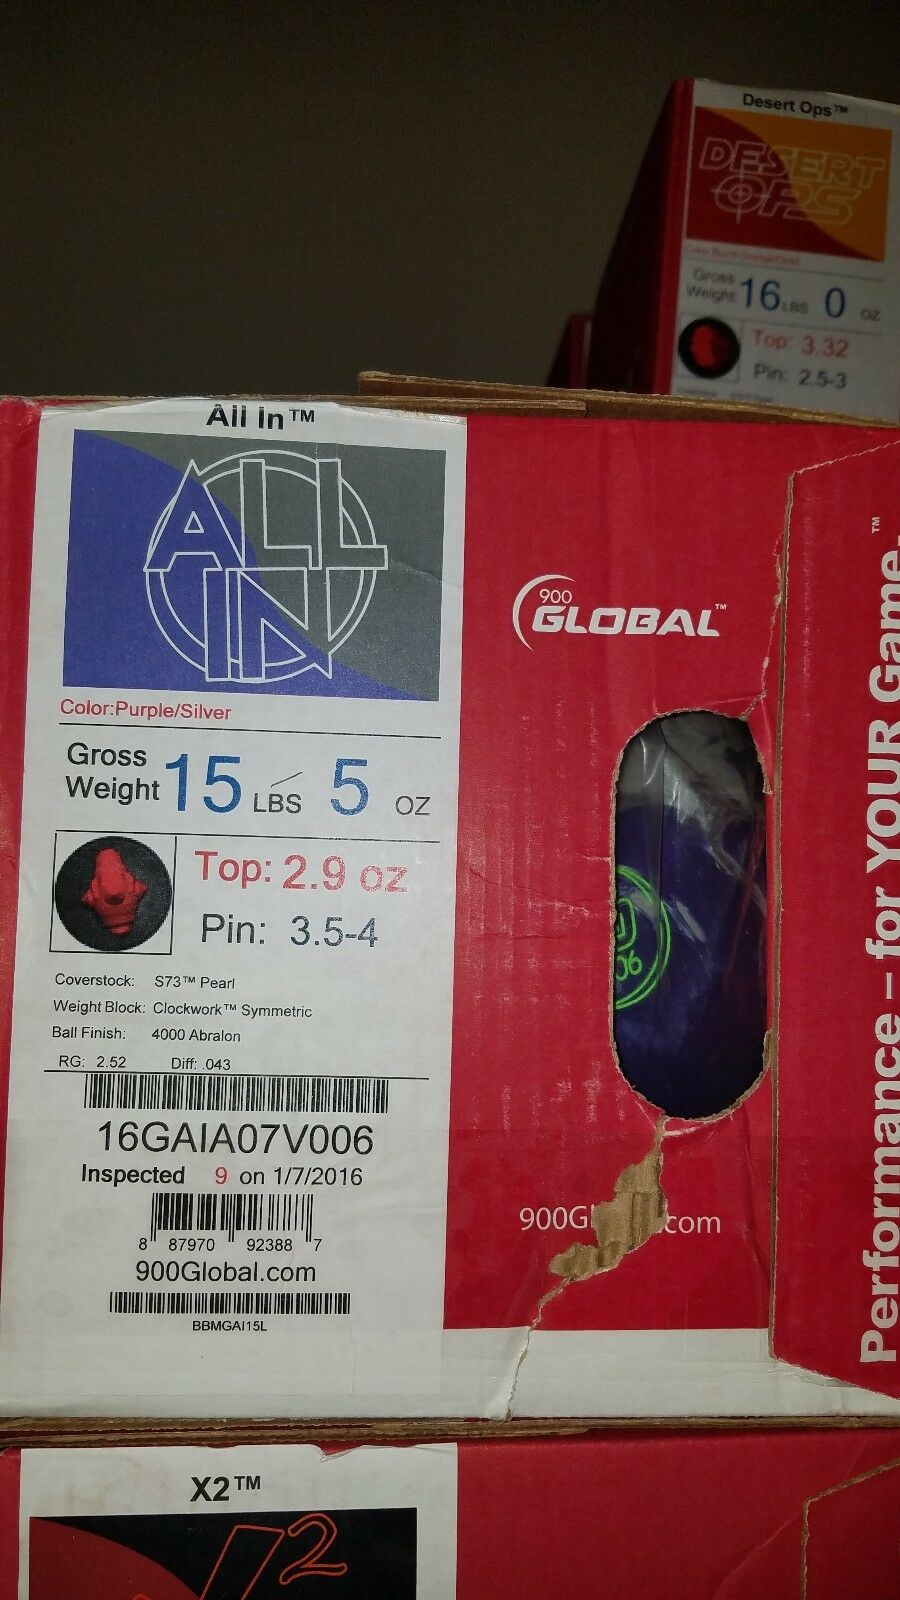 900 Global All In 1st Quality 15 Pound Bowling Ball   3.5 - 4  Pin   2.9oz TW